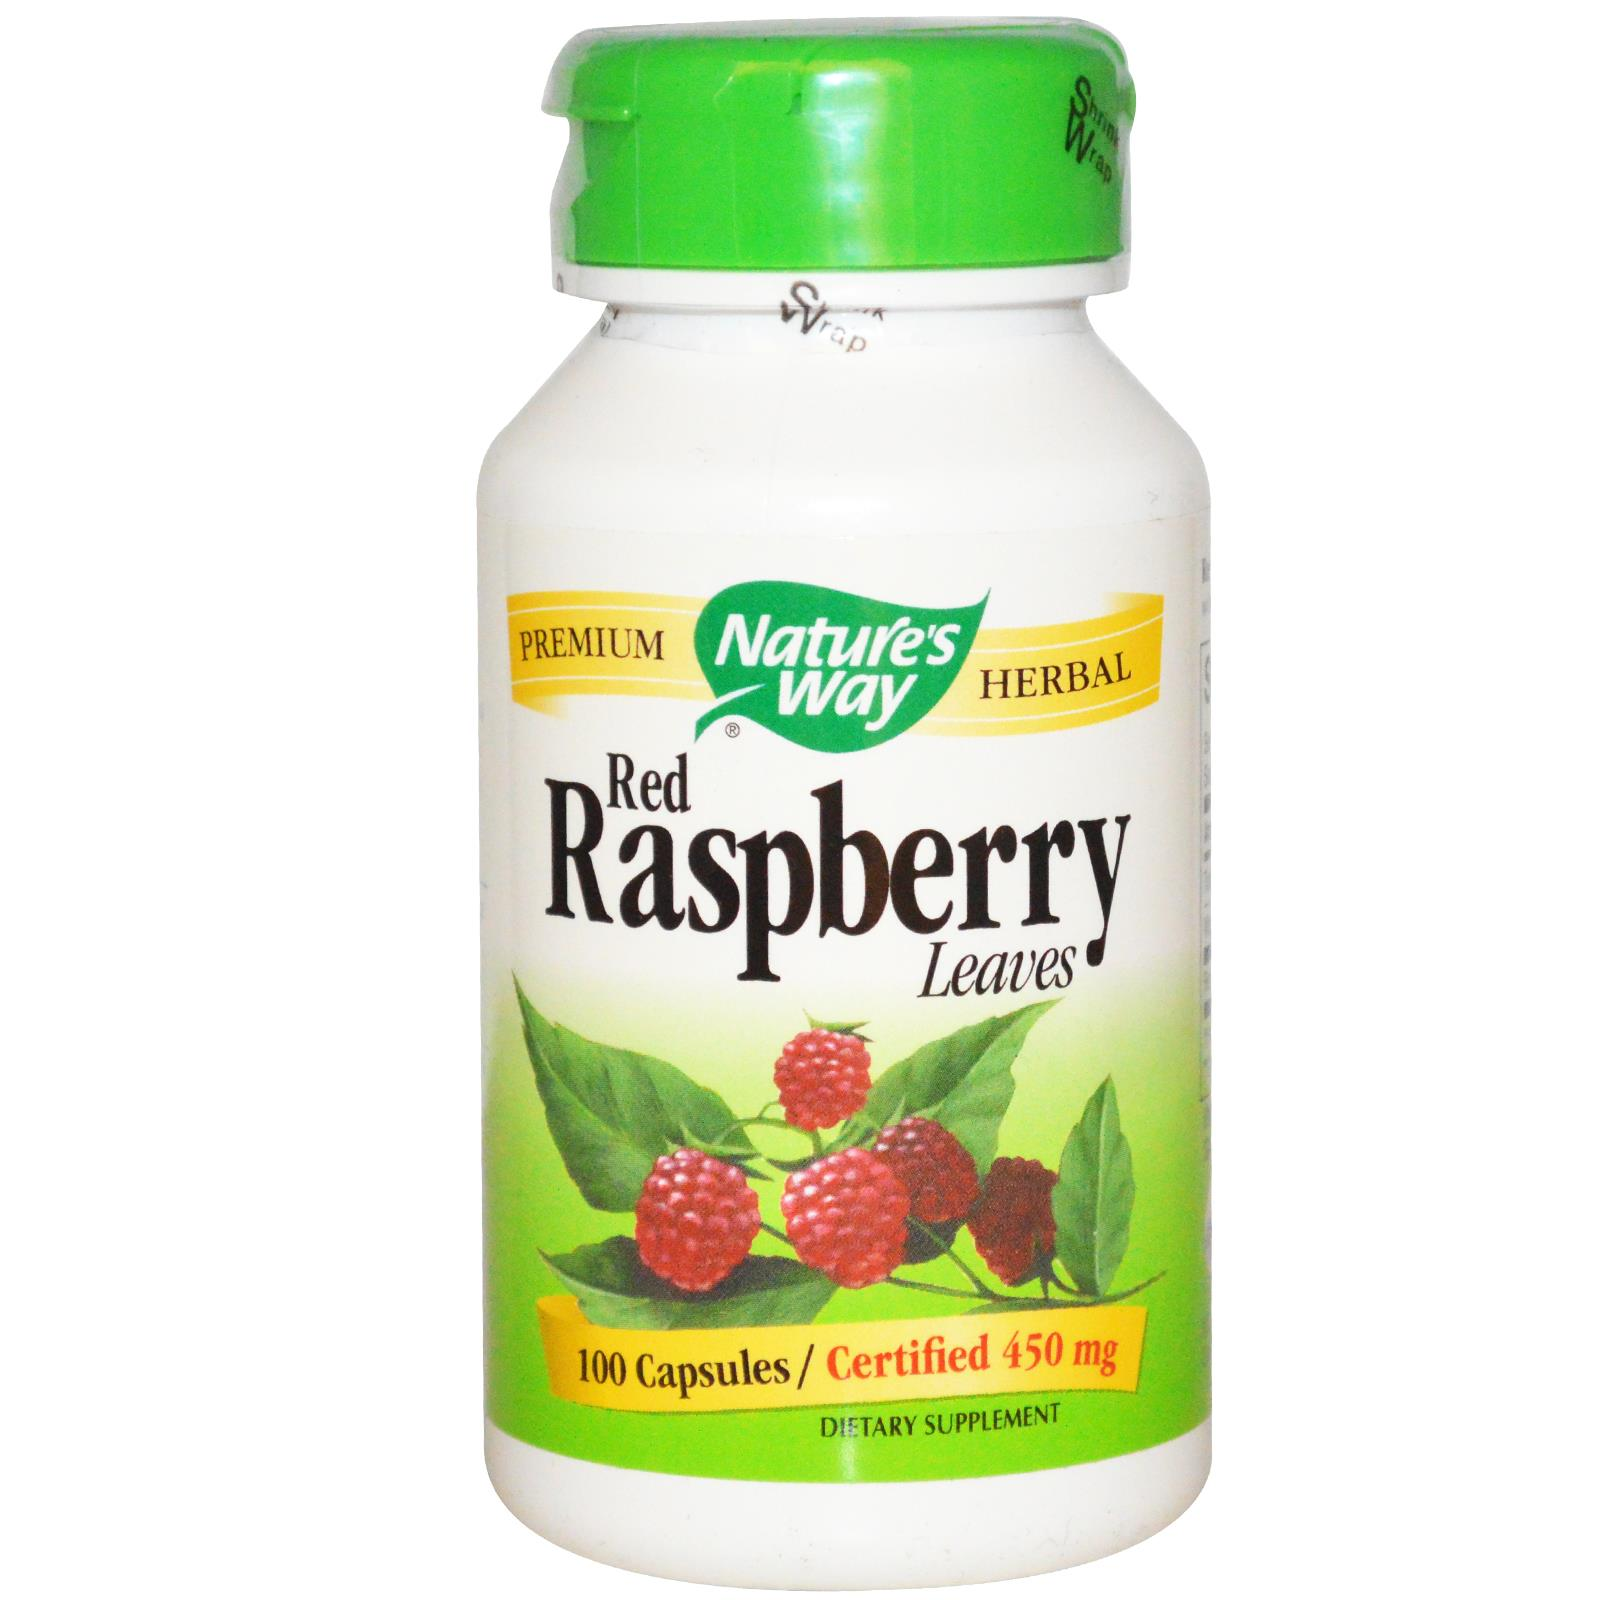 Raspberry leaf tea capsules